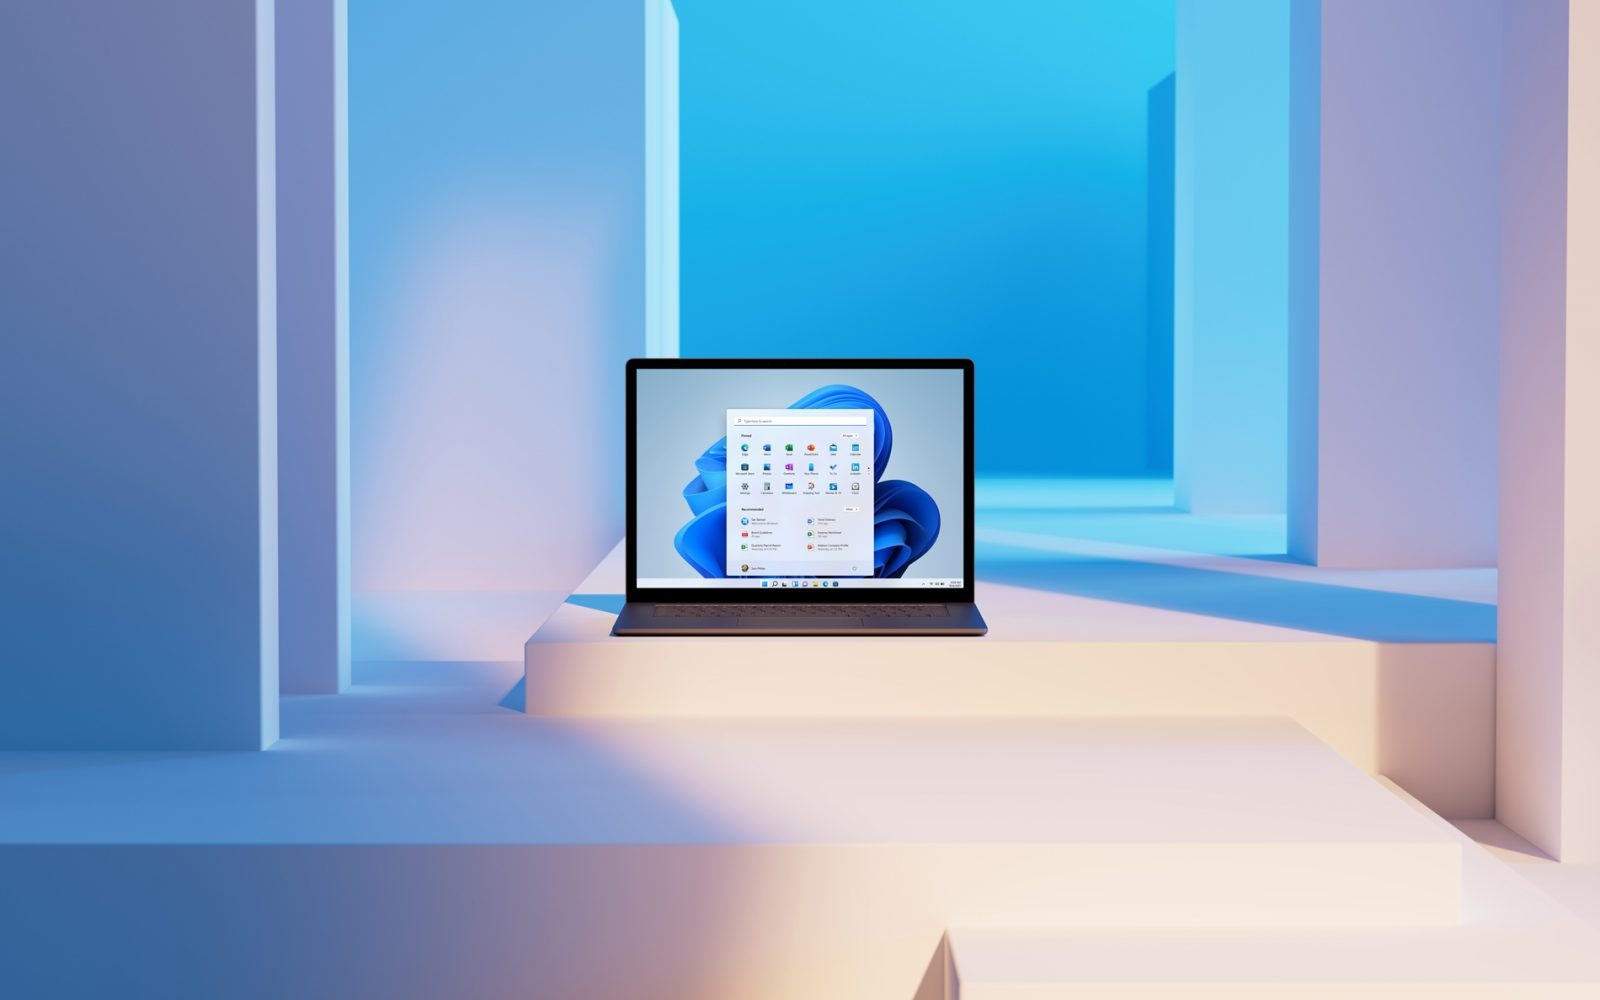 Microsoft explains how to install Windows 11 on unsupported PCs